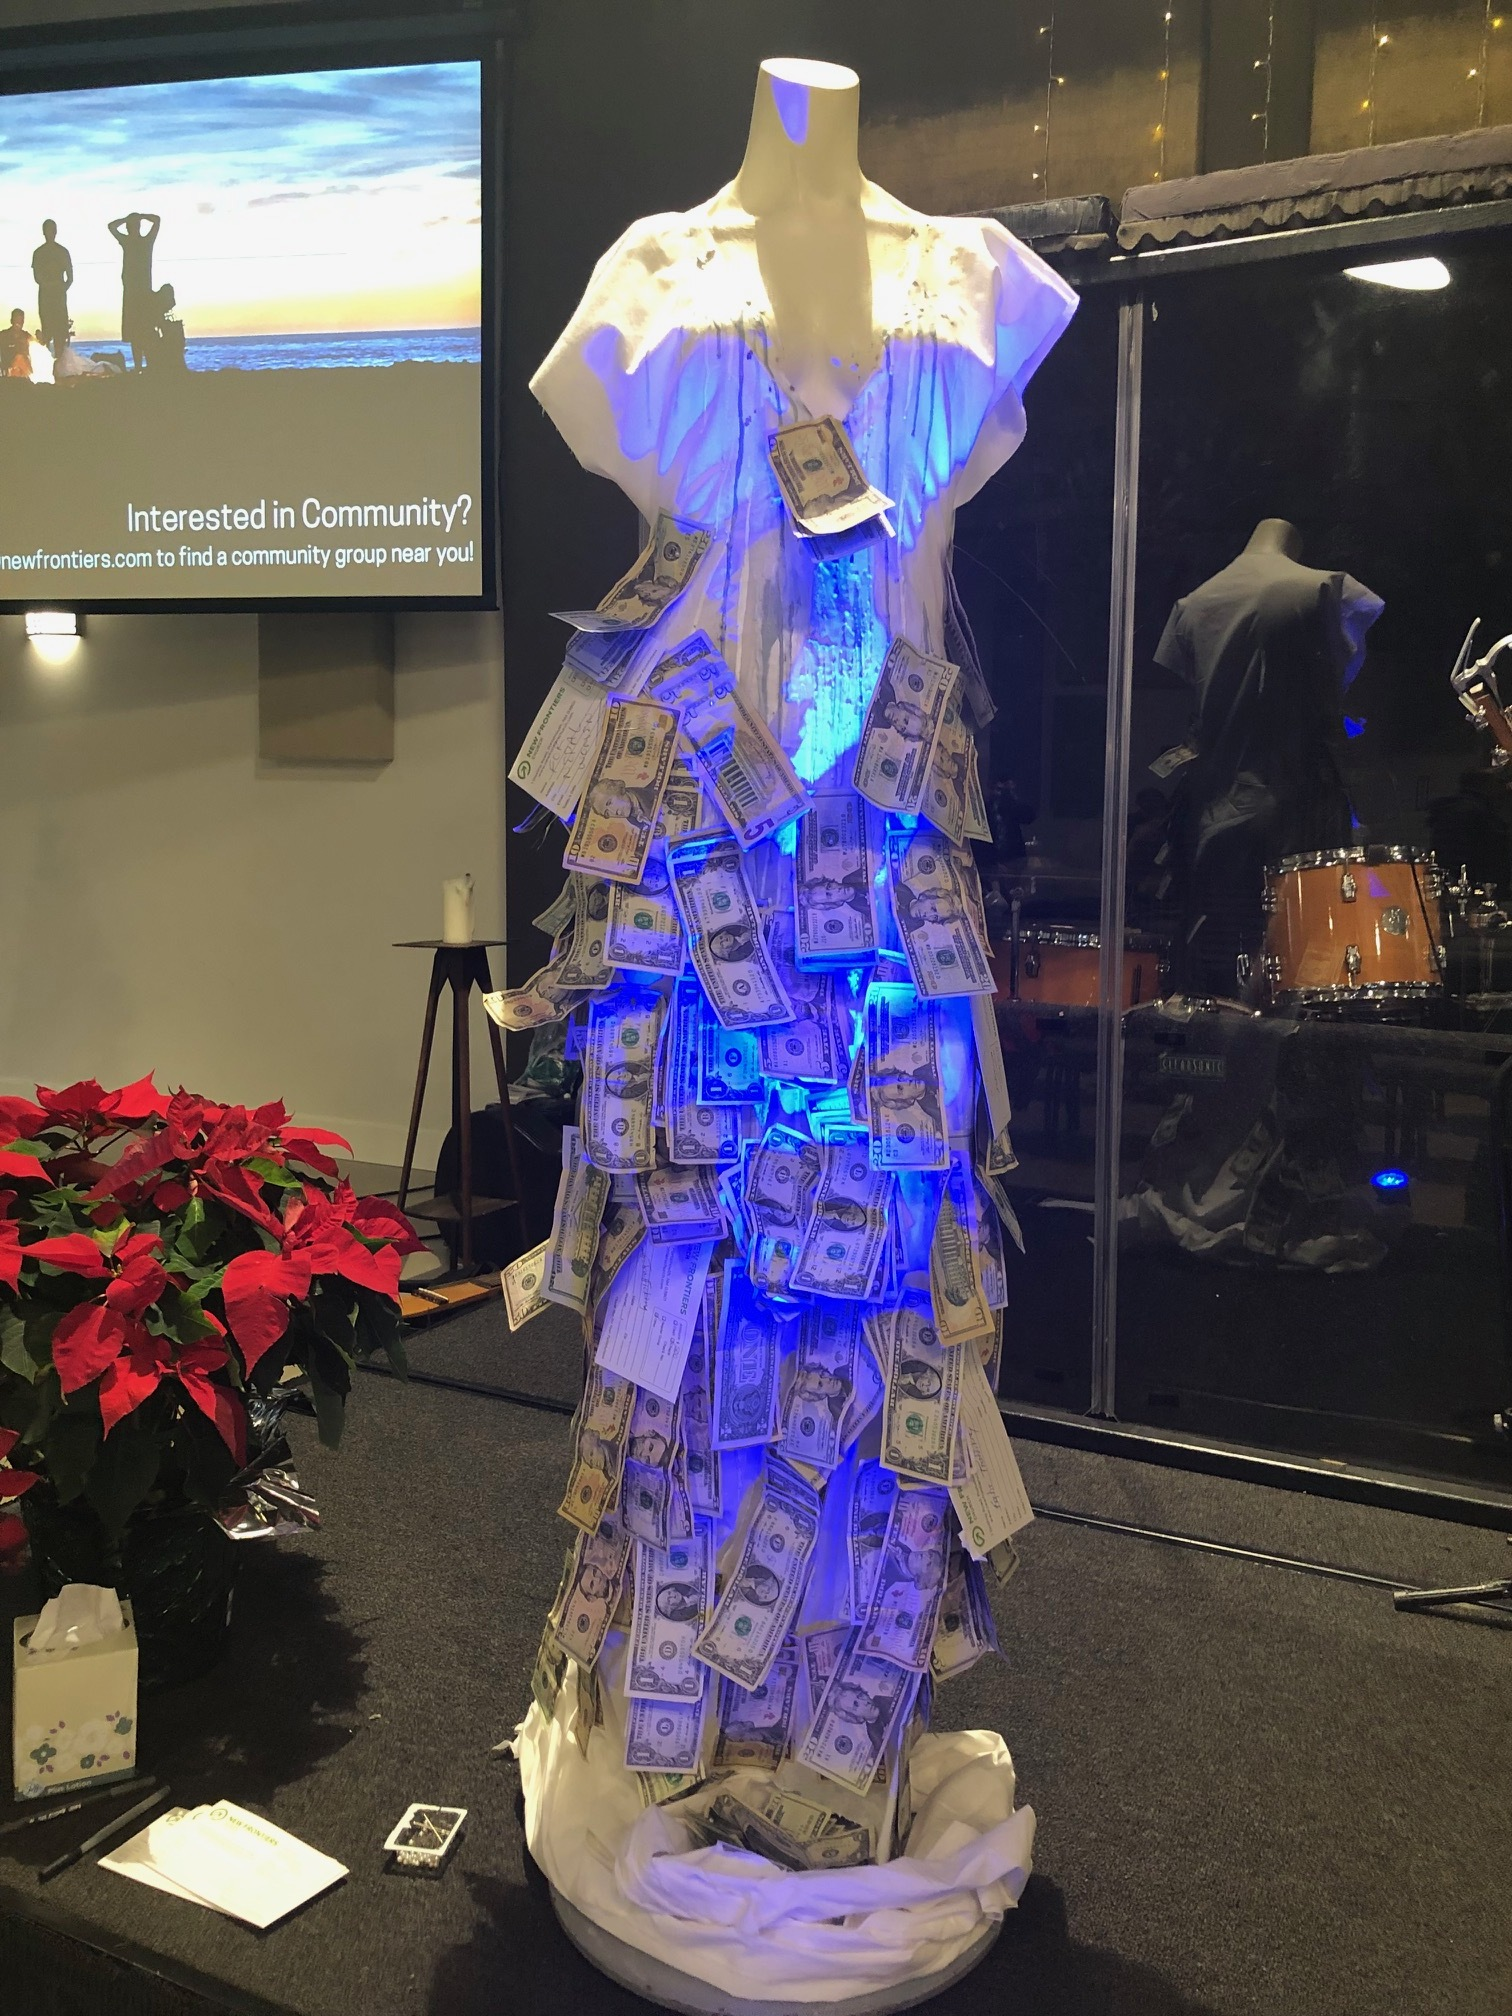 The dress placed on stage at New Frontiers Church to collect funds for James and Sylve.